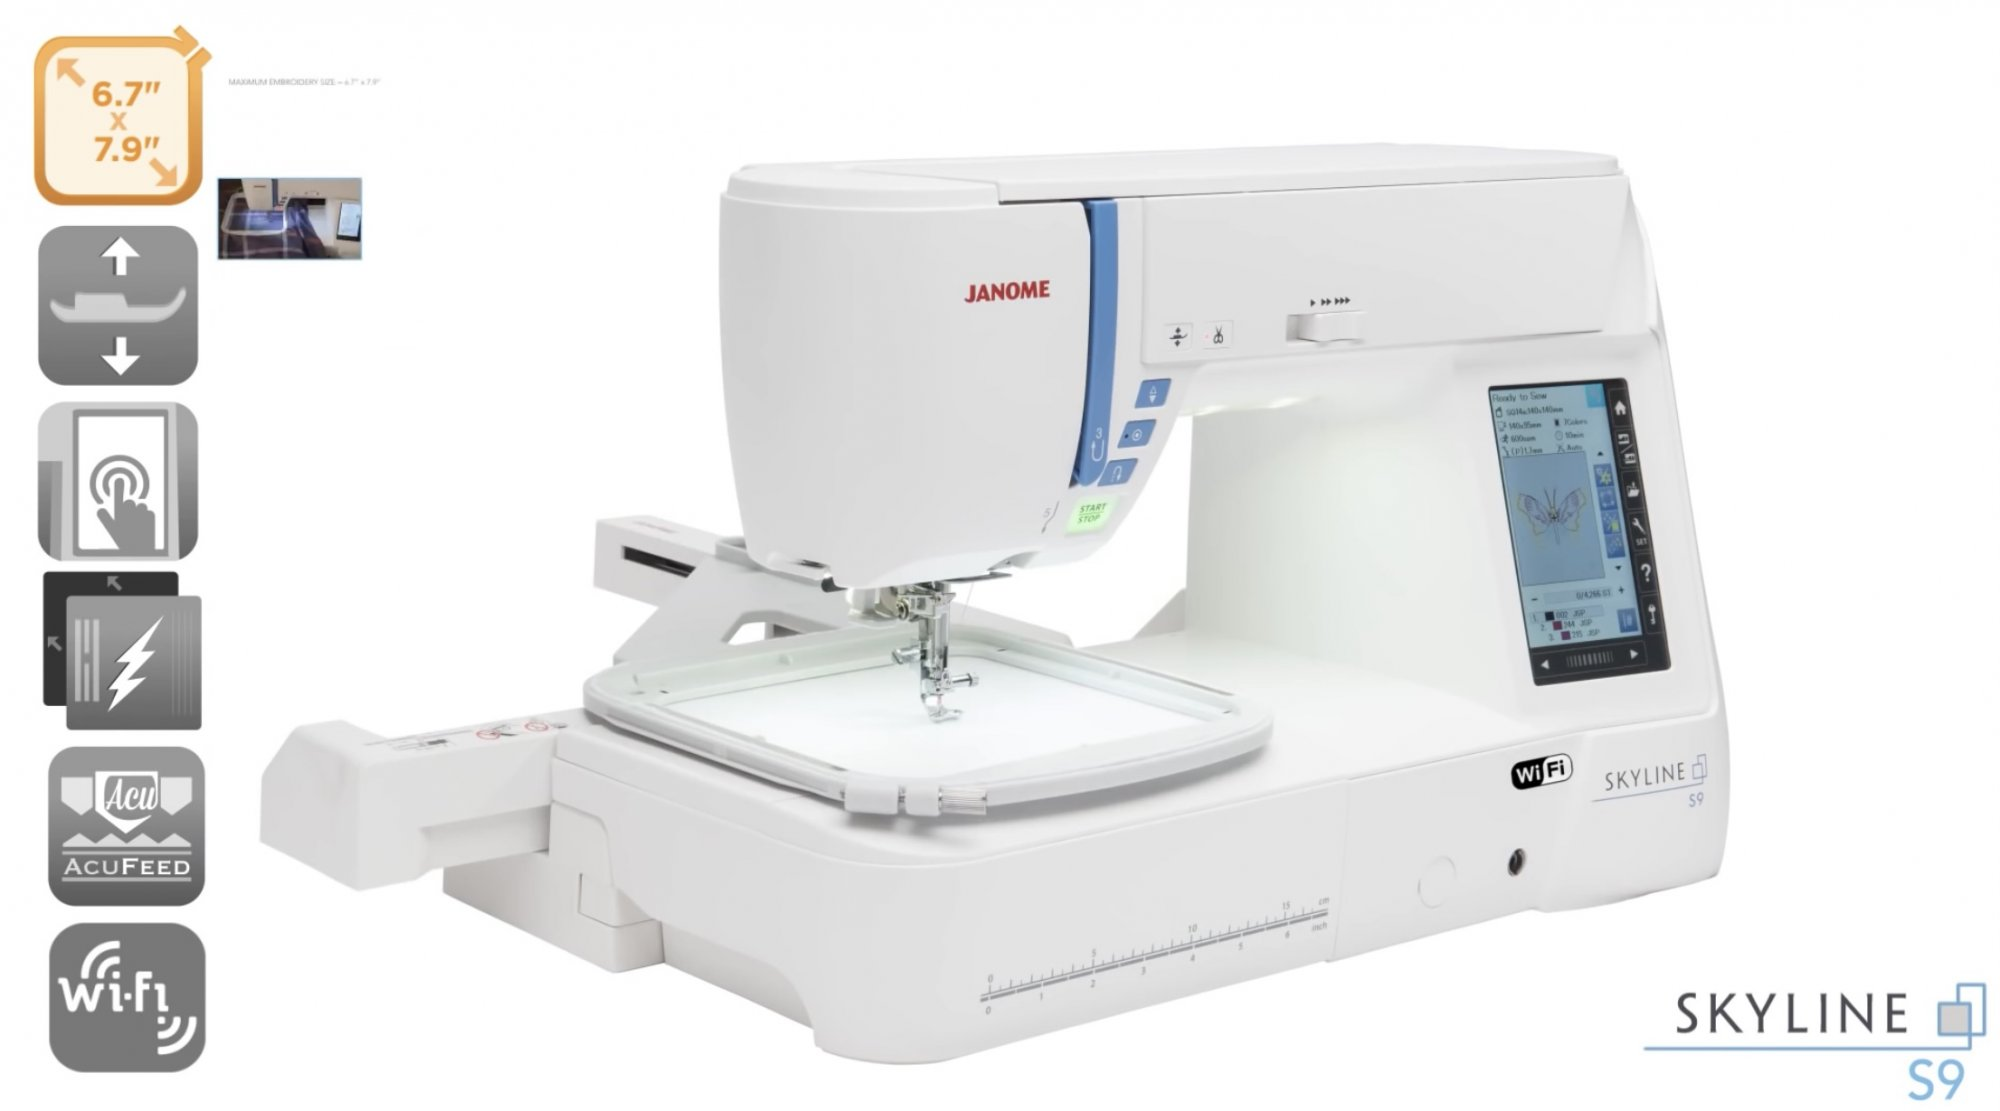 Janome Skyline 9 Embroidery, Sewing and Quilting Machine  8.3(210mm) Embroidery/ Sewing Field, WiFi Connectivity with iPad, Laptop & Pc